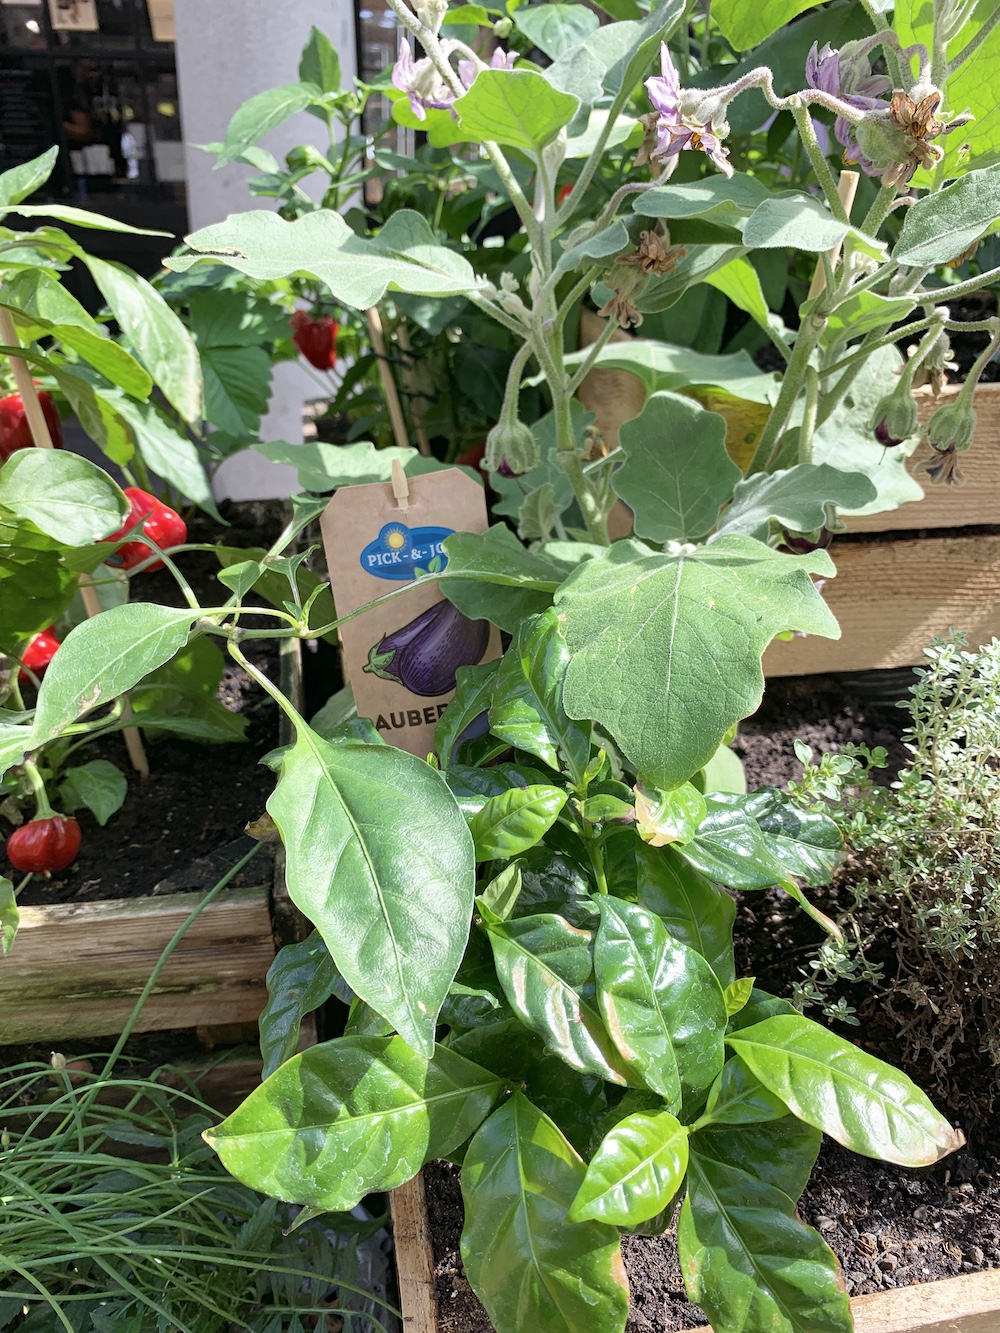 Crate Gardening for Small Spaces Red Peppers Aubergine Plants #Garden #Gardening #SmallSpace #SmallSpaceGardening #ContainerGardening #VegetableGarden #HerbGarden #PorchGarden #PatioGarden